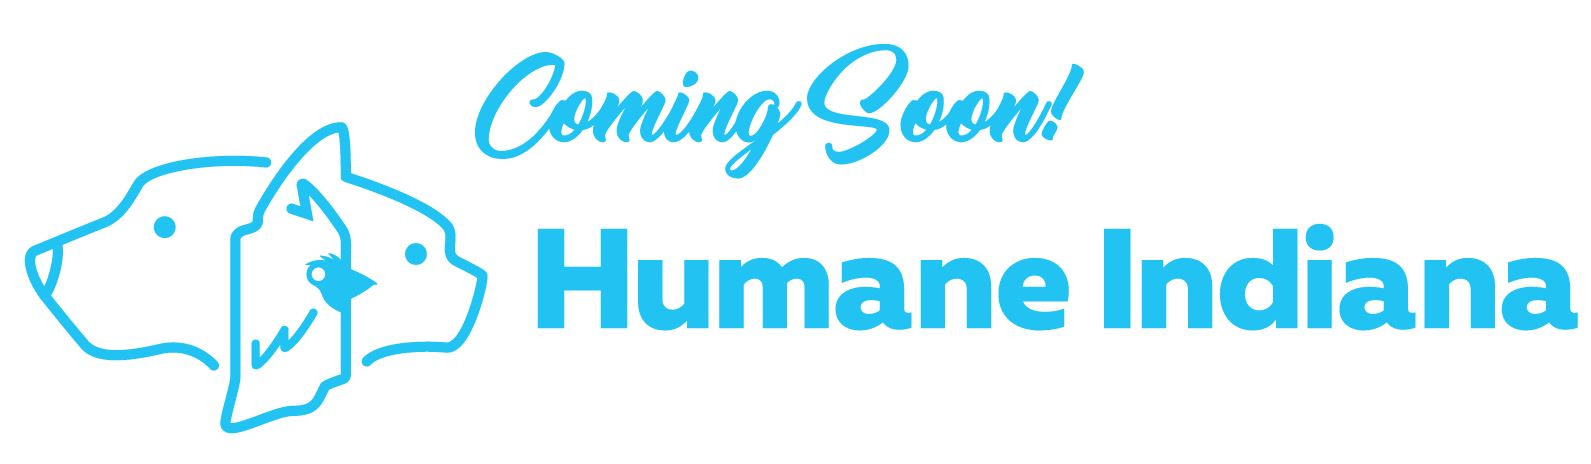 Humane Indiana South Shelter To Open In Alsip Home Nursery St John